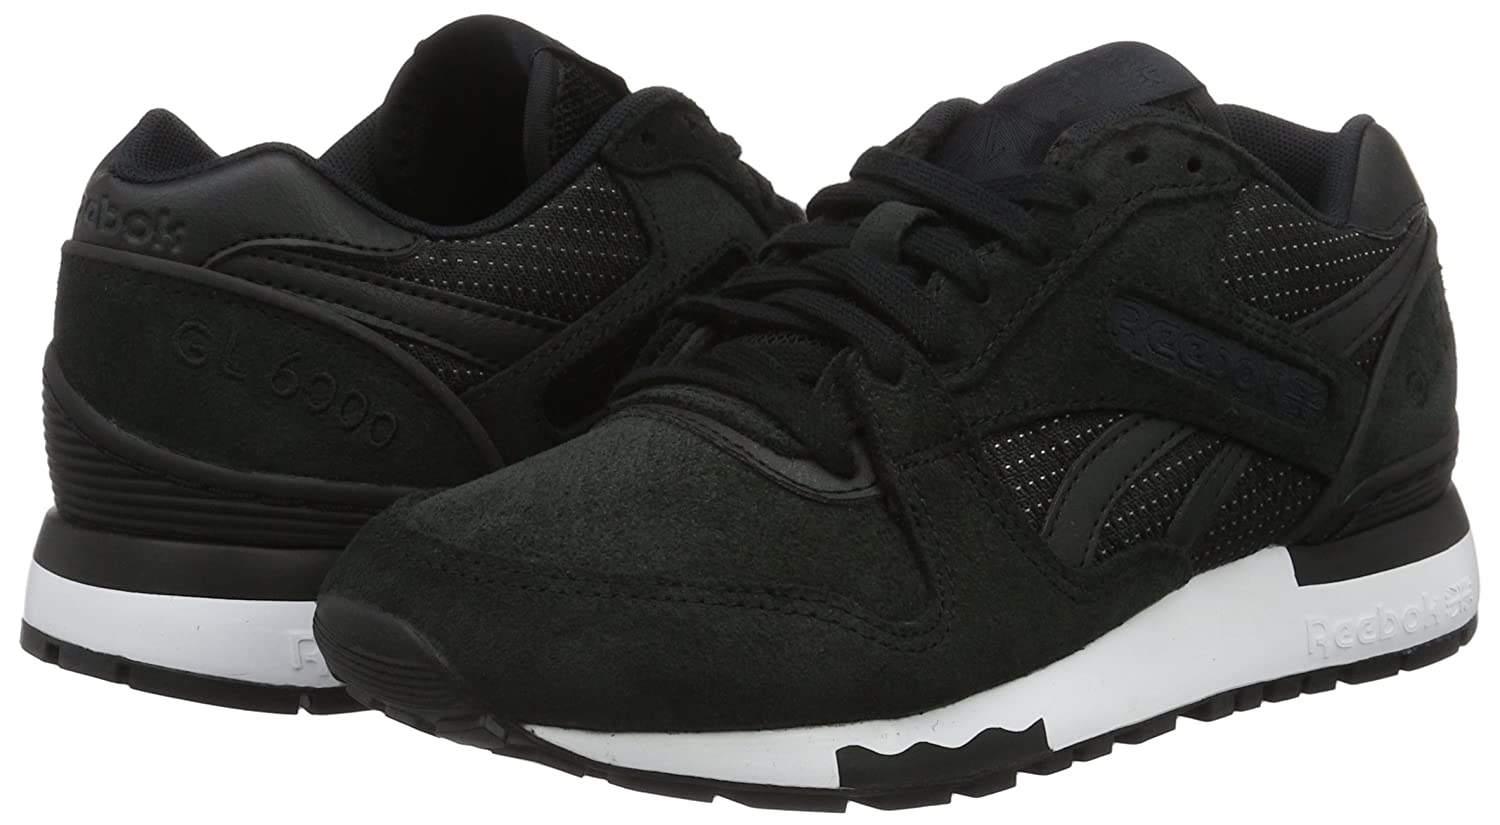 Unisex Adults Gl 6000 Pt Low-Top Sneakers Reebok Buy Cheap Best Prices Cheap Newest Cheap Low Cost A3Zb2